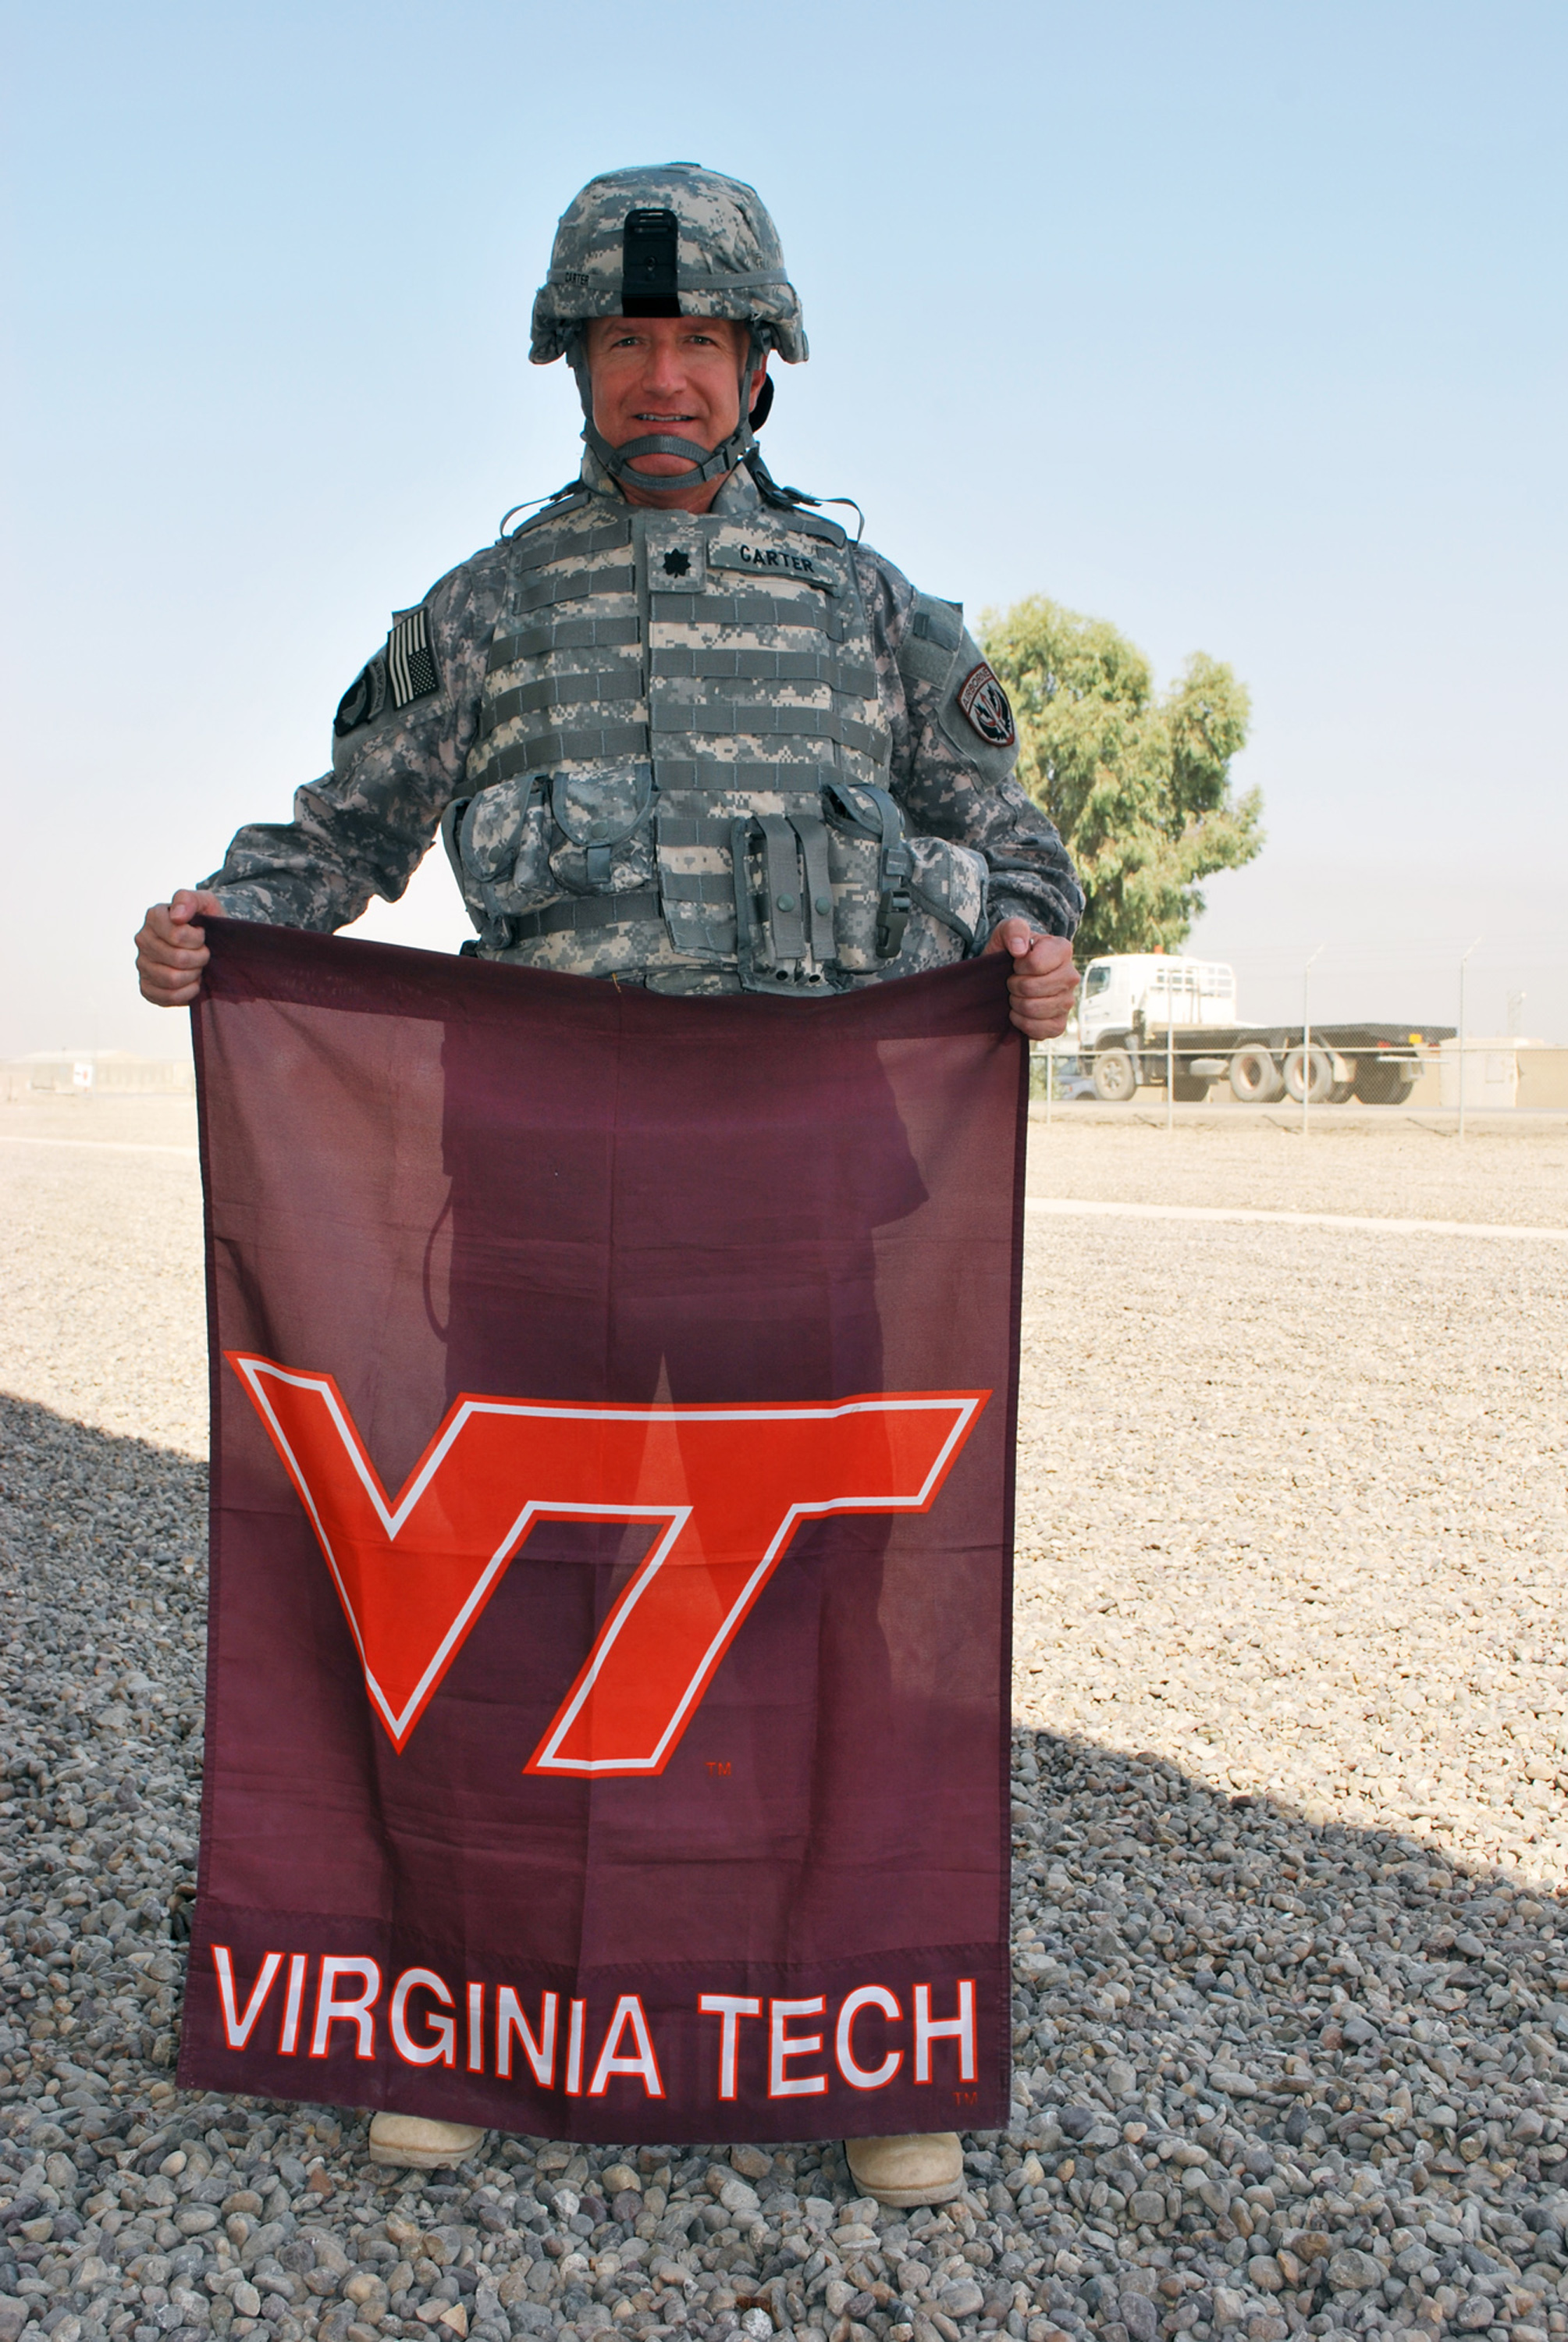 Lt. Col. Steven Carter, U.S. Army, Virginia Tech Corps of Cadets Class of 1989